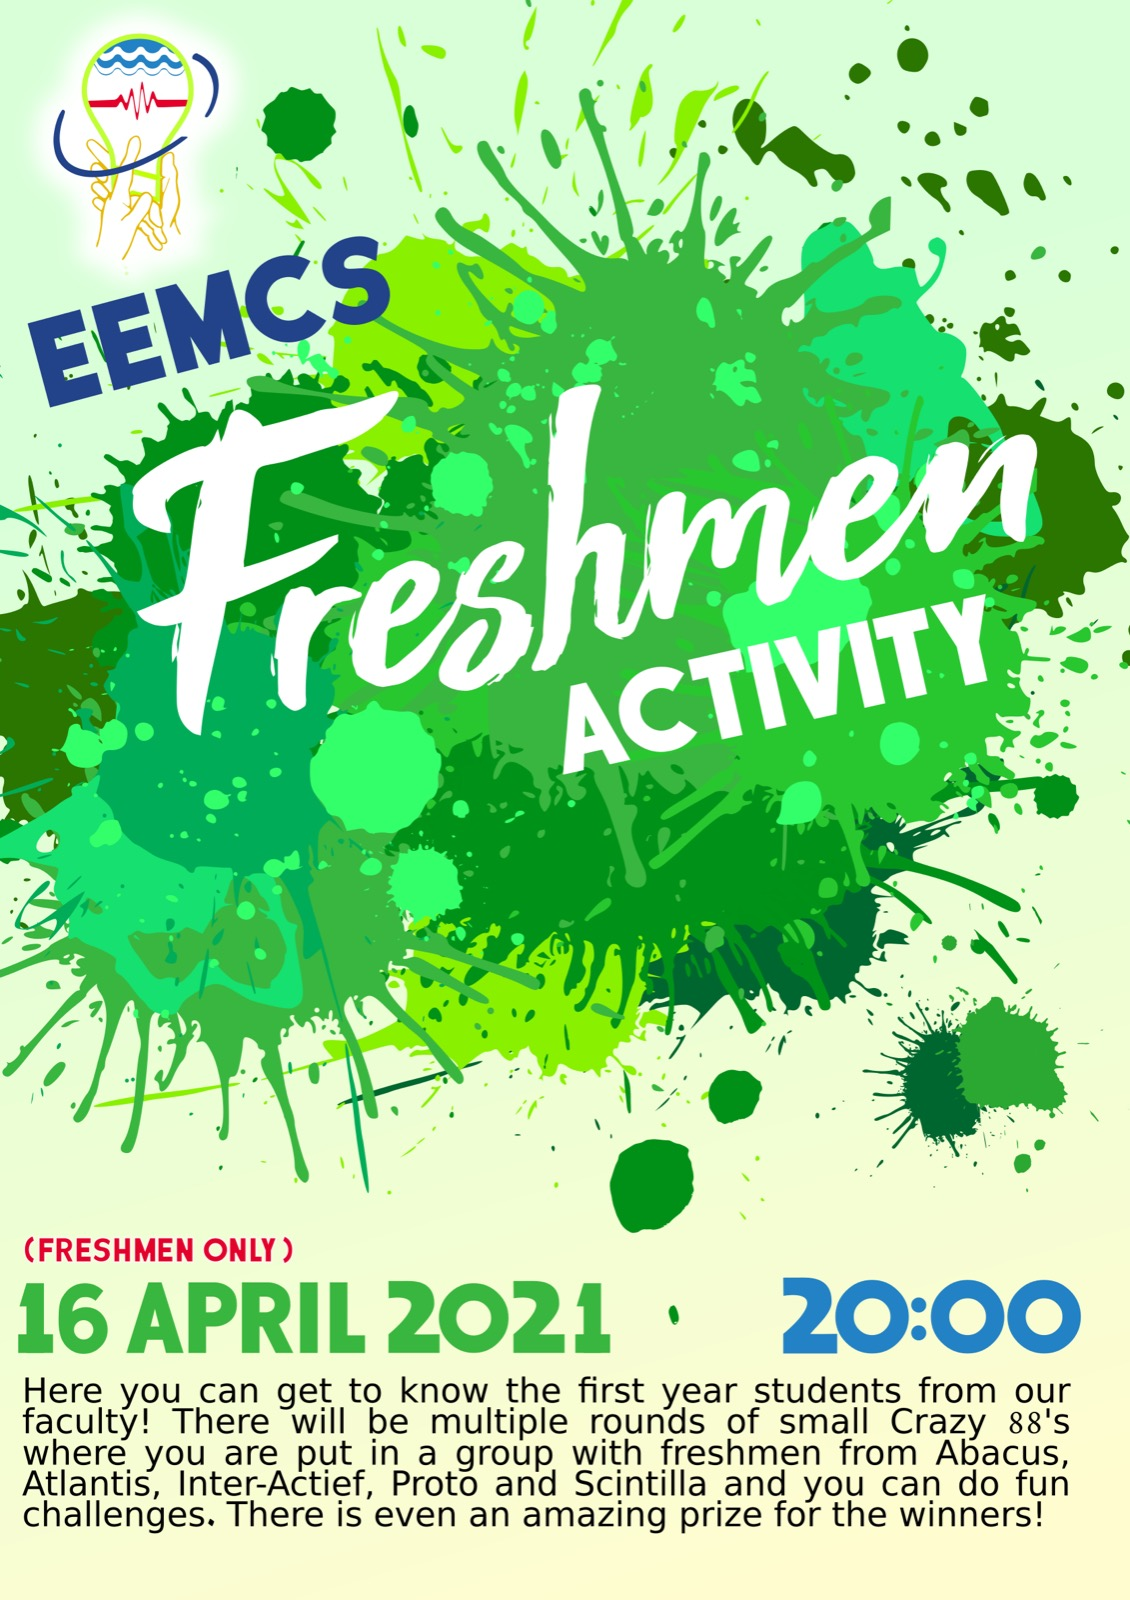 EEMCS Sjaarscie Freshman Activity